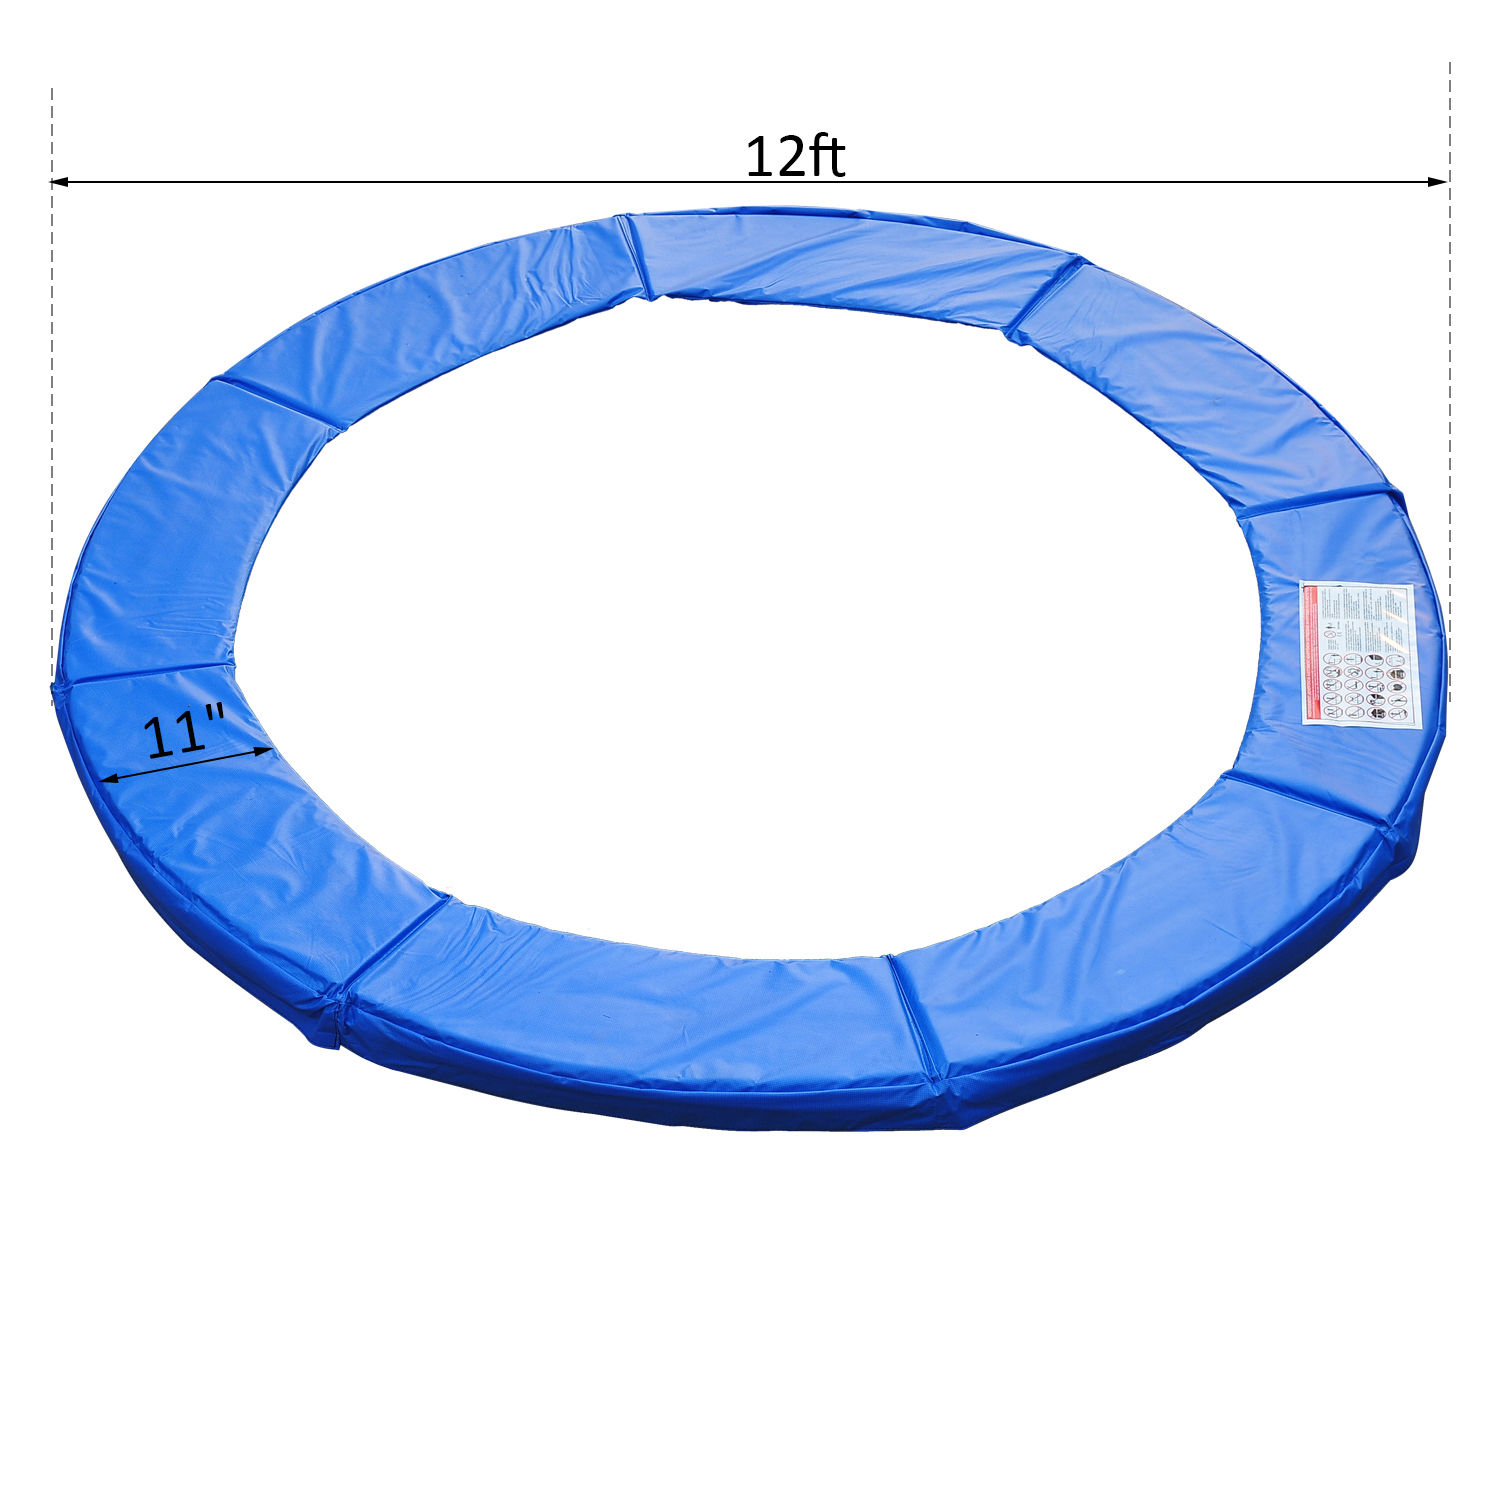 12ft-Trampoline-Pad-Spring-Safety-Replacement-Gym-Bounce-Jump-Cover-EPE-Foam